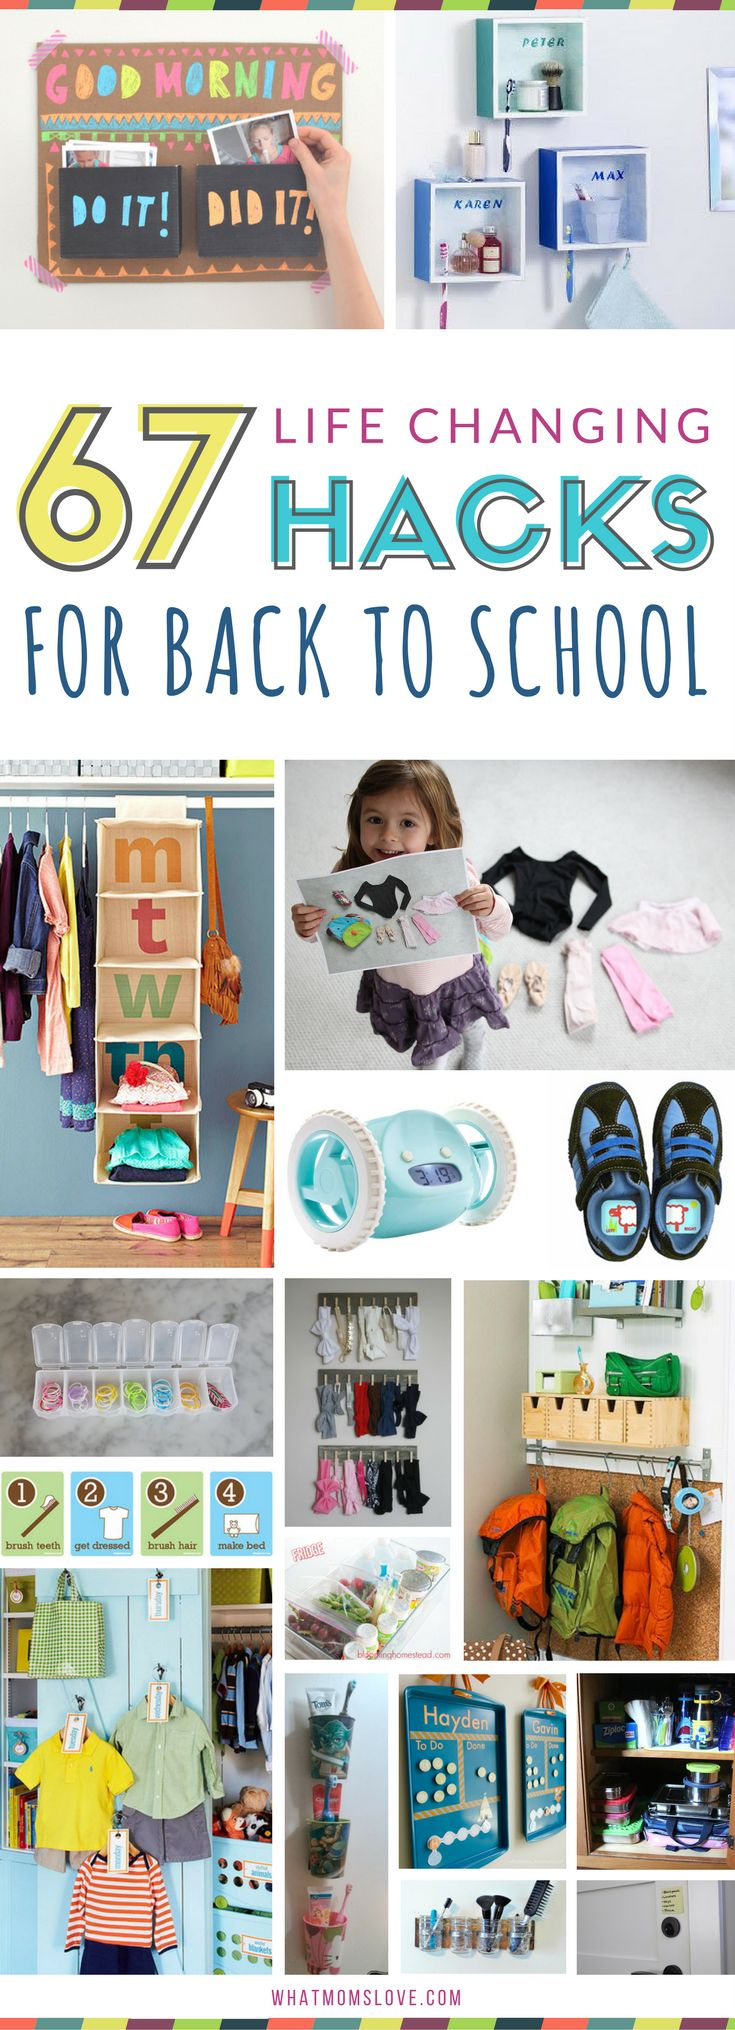 Organization tips for back to school | Amazing ideas for organizing your mornings for moms, kids and teens for a stress free school year | Survival hacks and tips